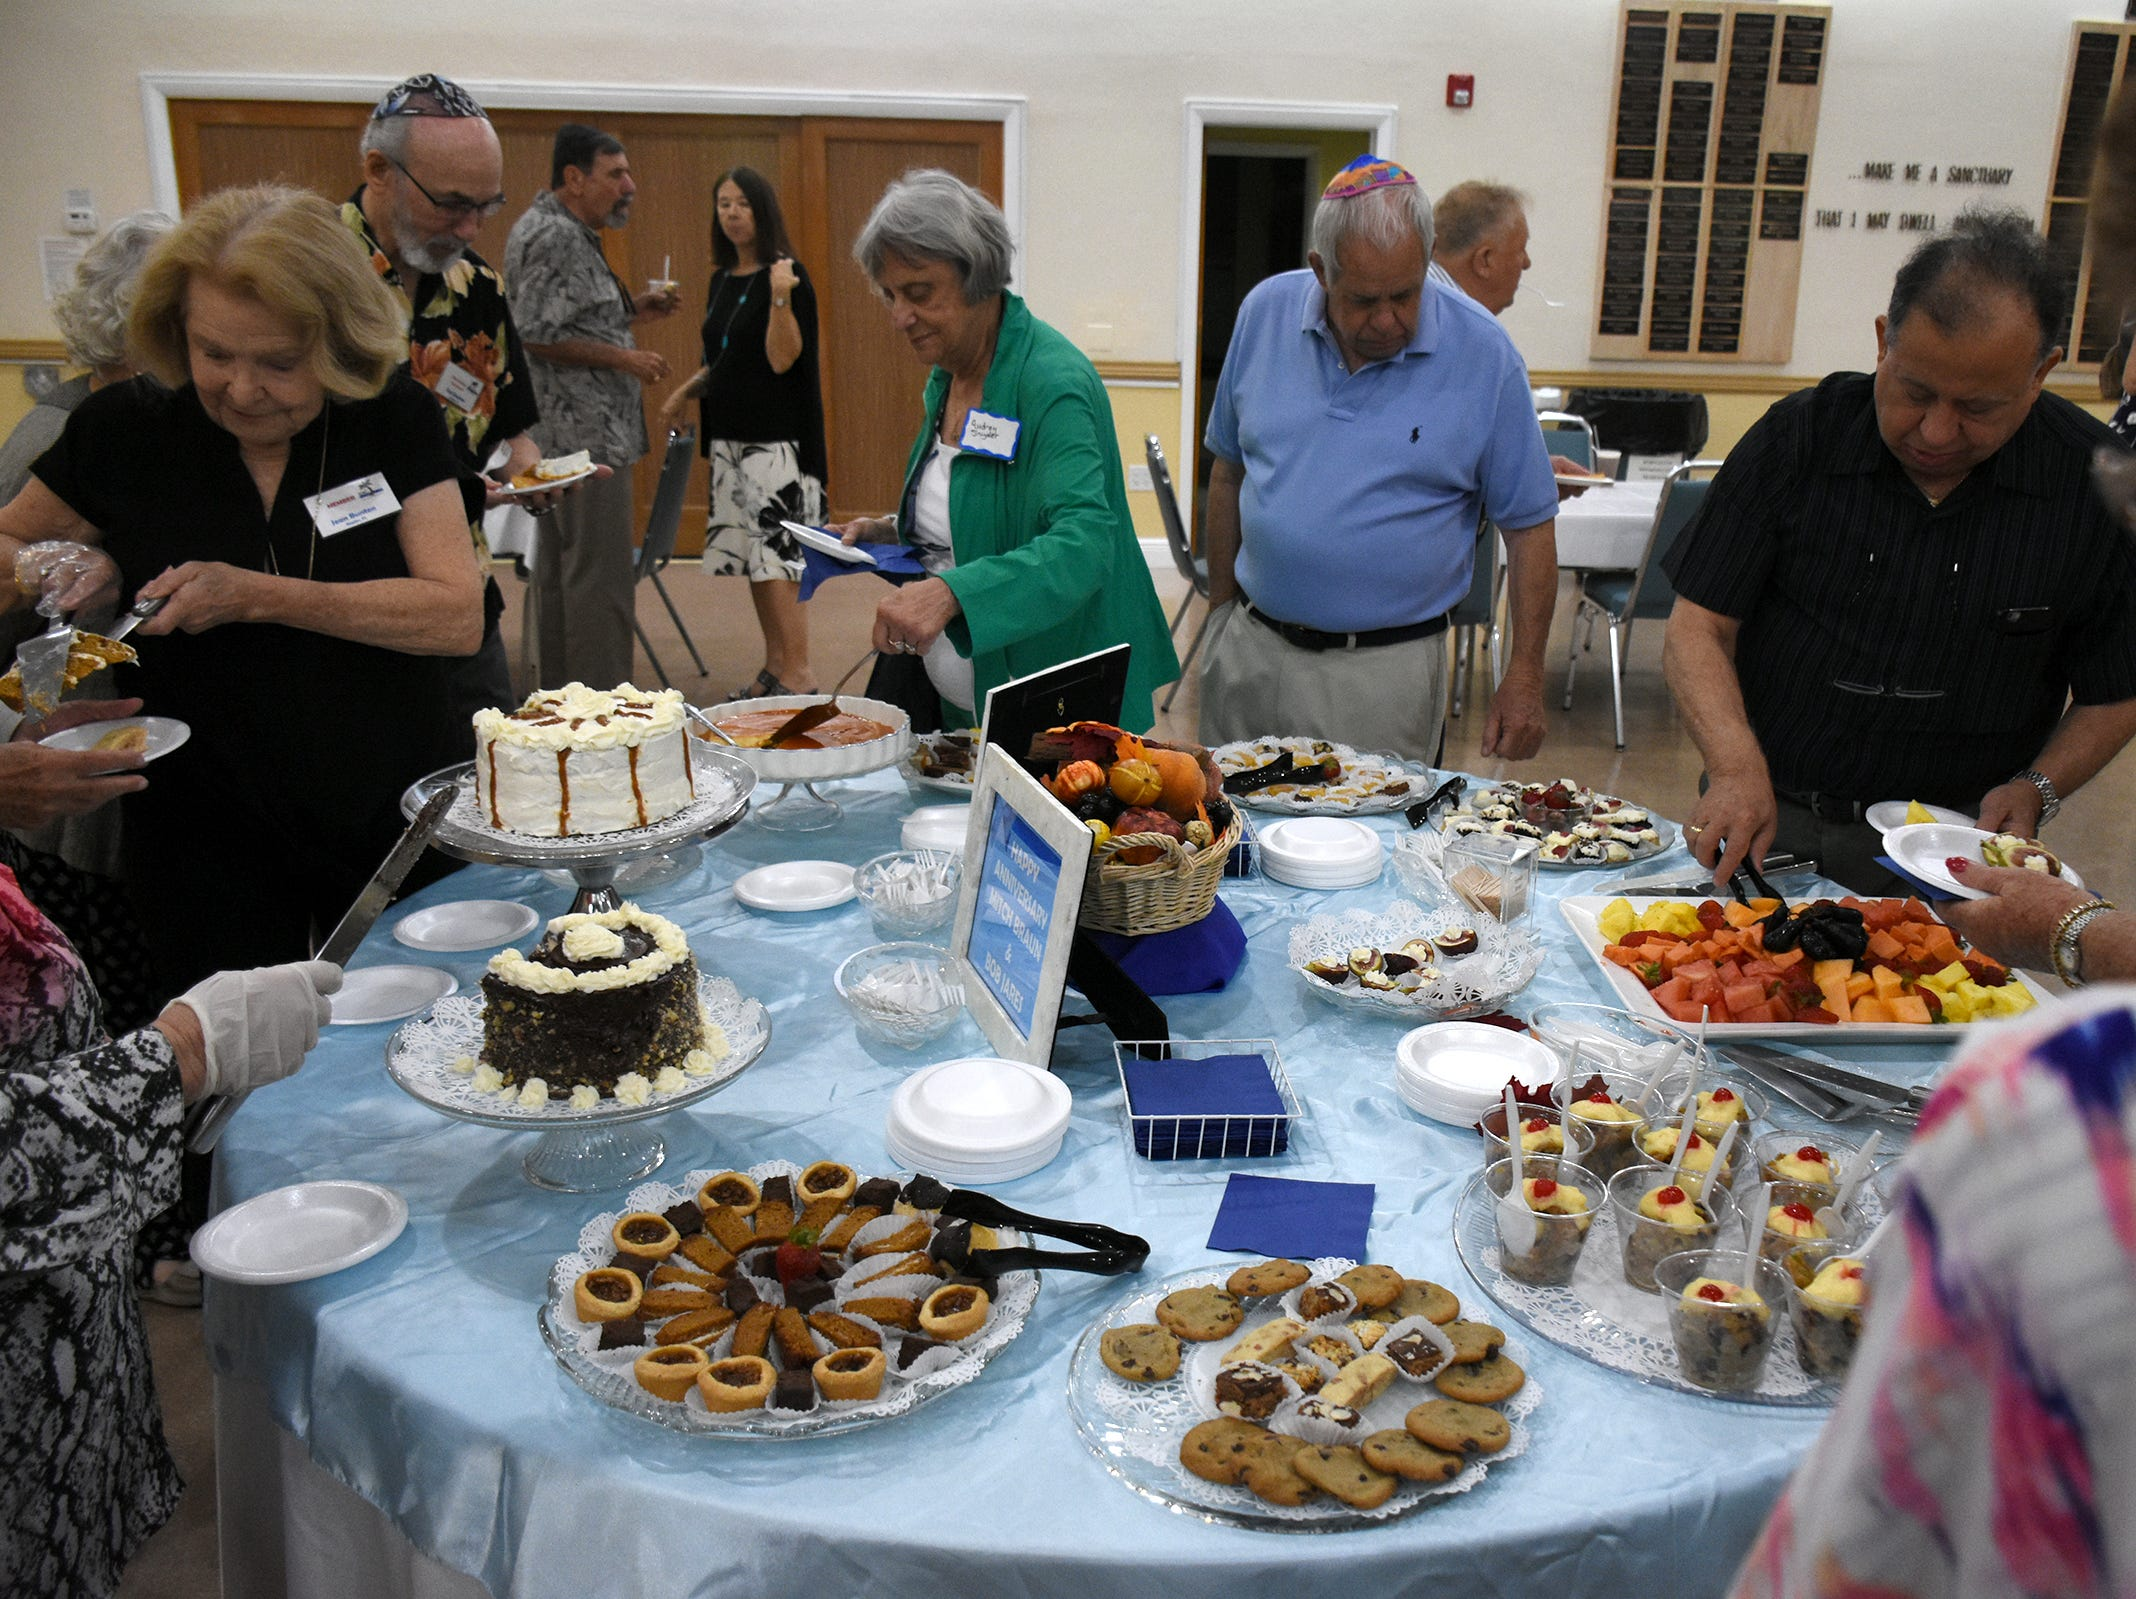 After the ceremony, everyone steps into an adjoining room for oneg, a little nosh. The Jewish Congregation of Marco Island held a Shabbat service Friday evening marking the 80th anniversary of Kristallnacht, when Nazi Germany brought perseution of Jews out into the open.